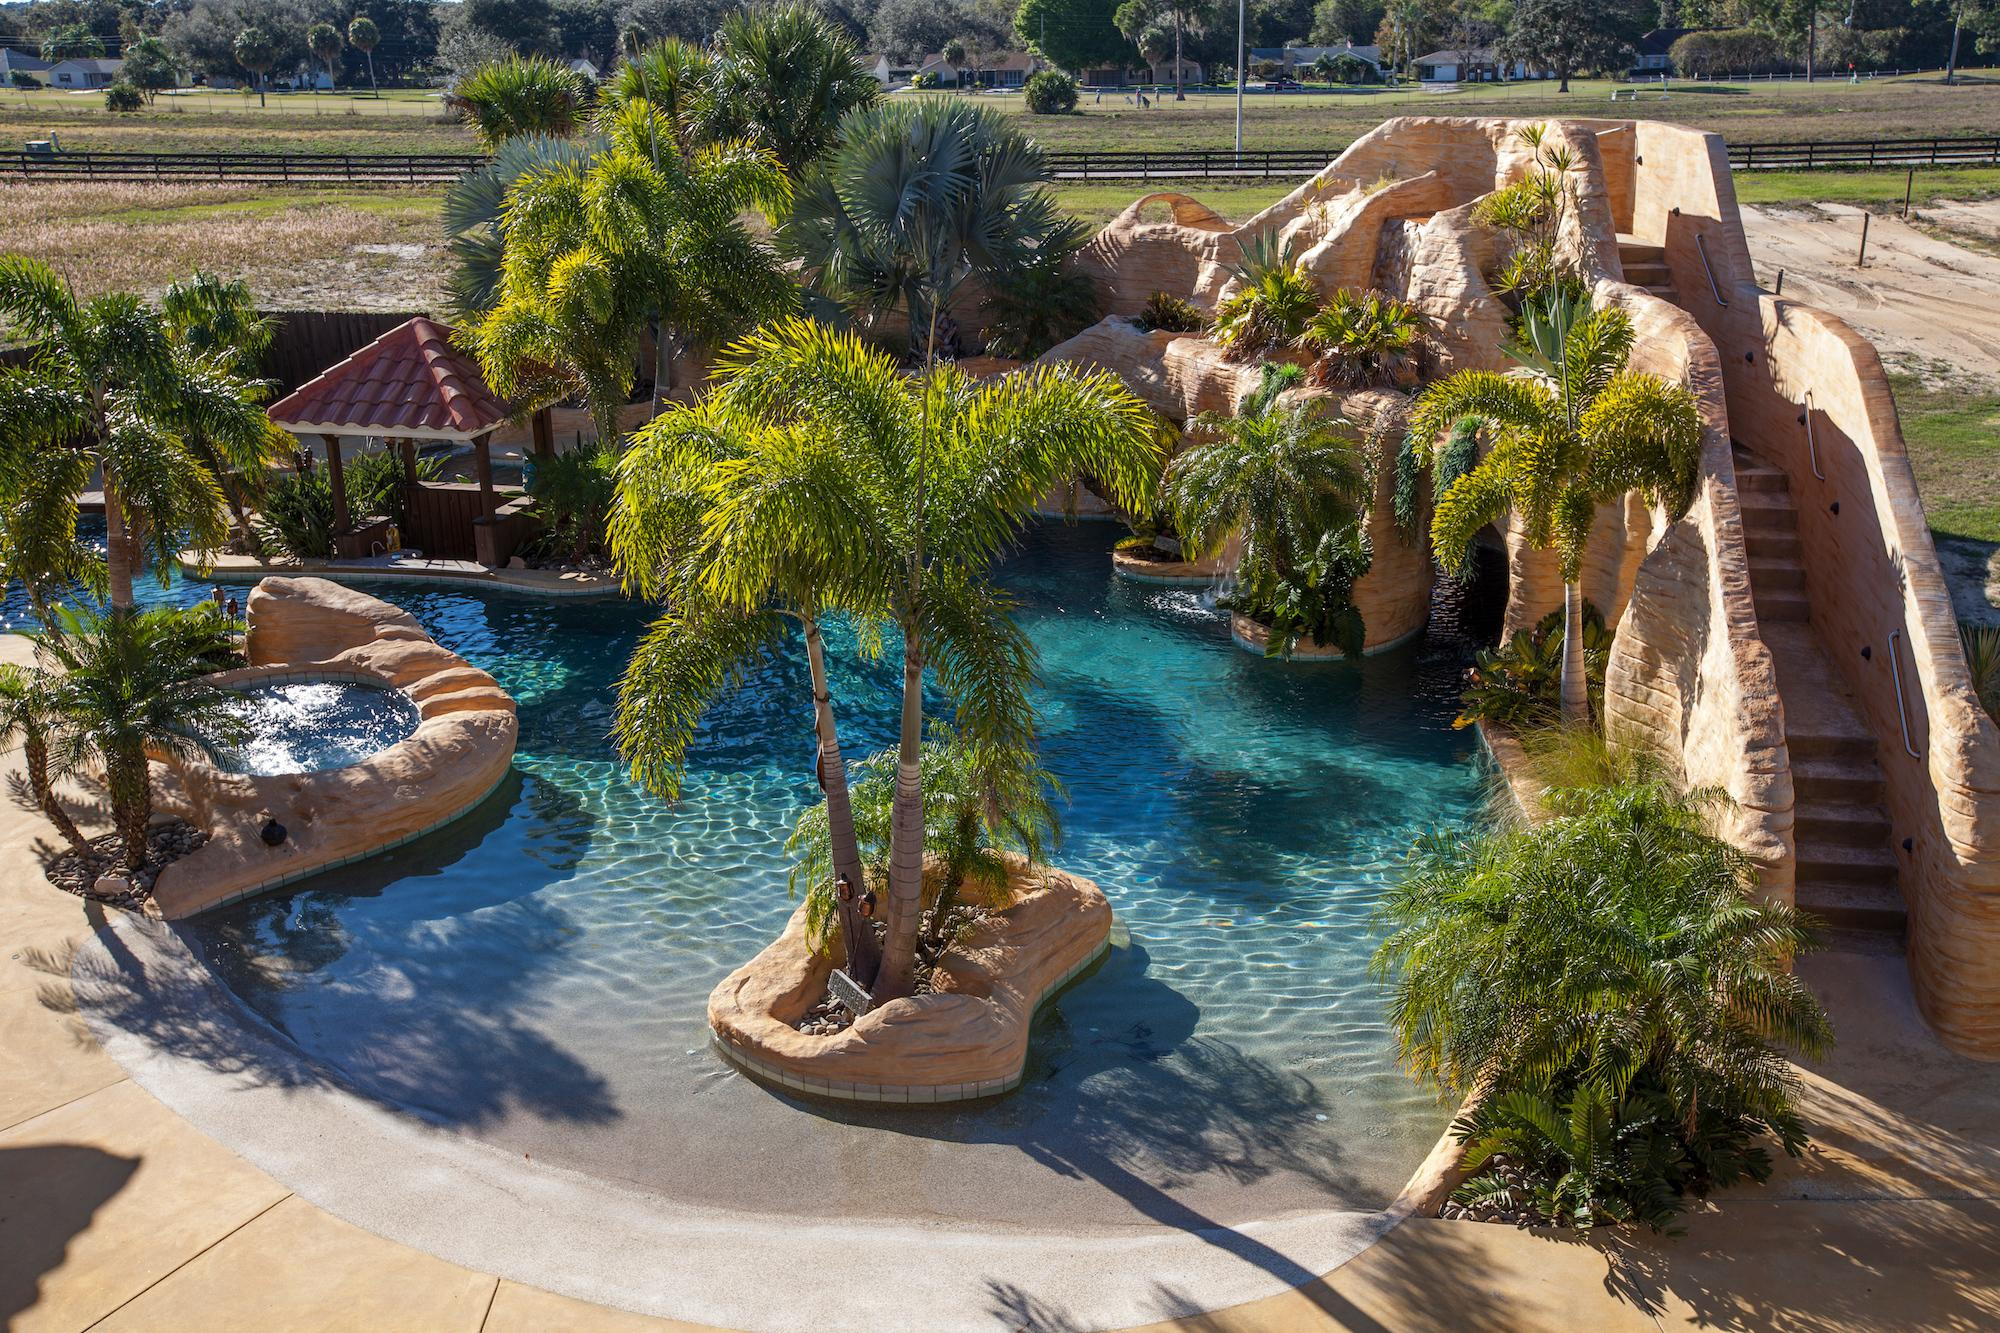 Best ideas about Backyard Water Park . Save or Pin Florida Home with Backyard Water Park [2000x1333] House Now.